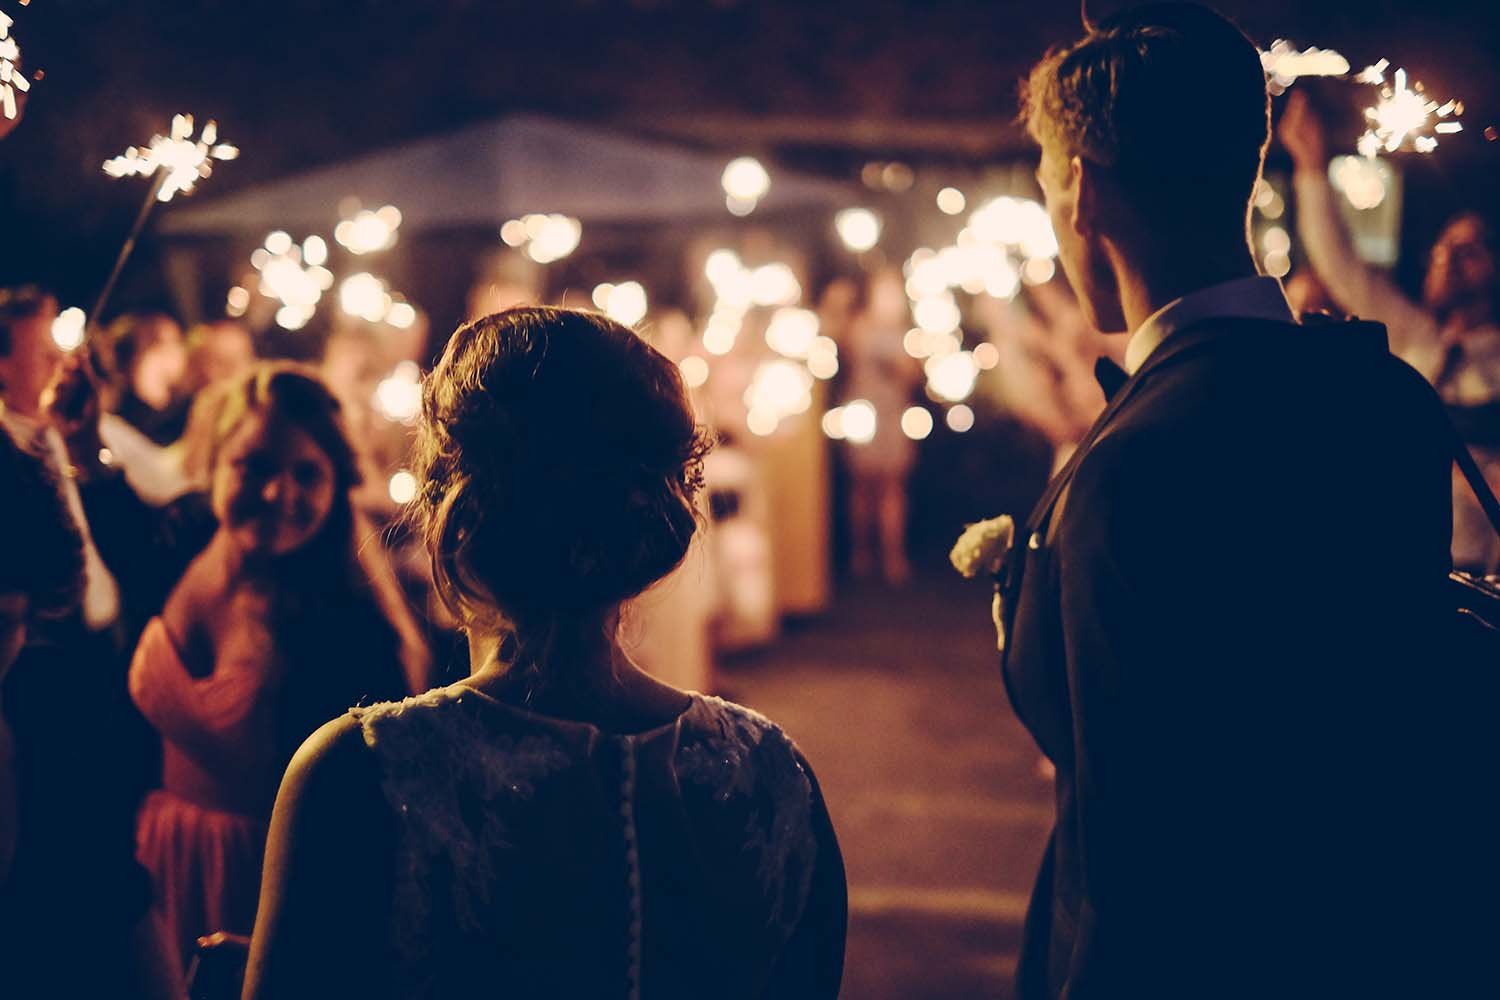 Budgeting for Your Big Day: How to Create a Wedding Budget and Checklist Much Better Than a Wedding Allowance Calculator Alone